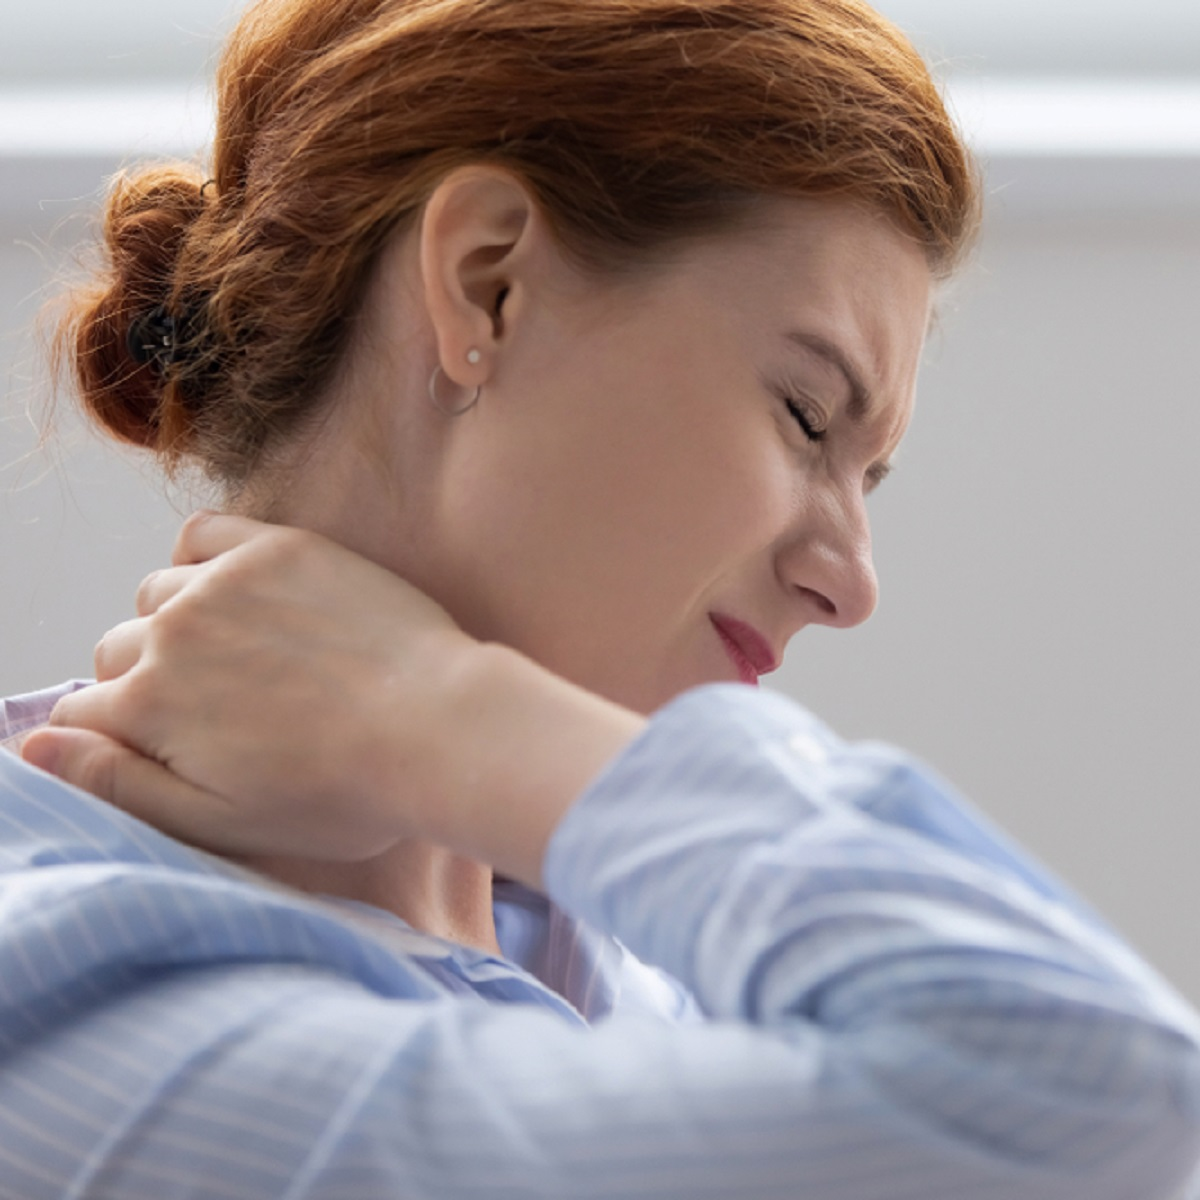 FIBROMYALGIA (FM) – Symptoms, Causes, Risk Factors and Natural Treatment